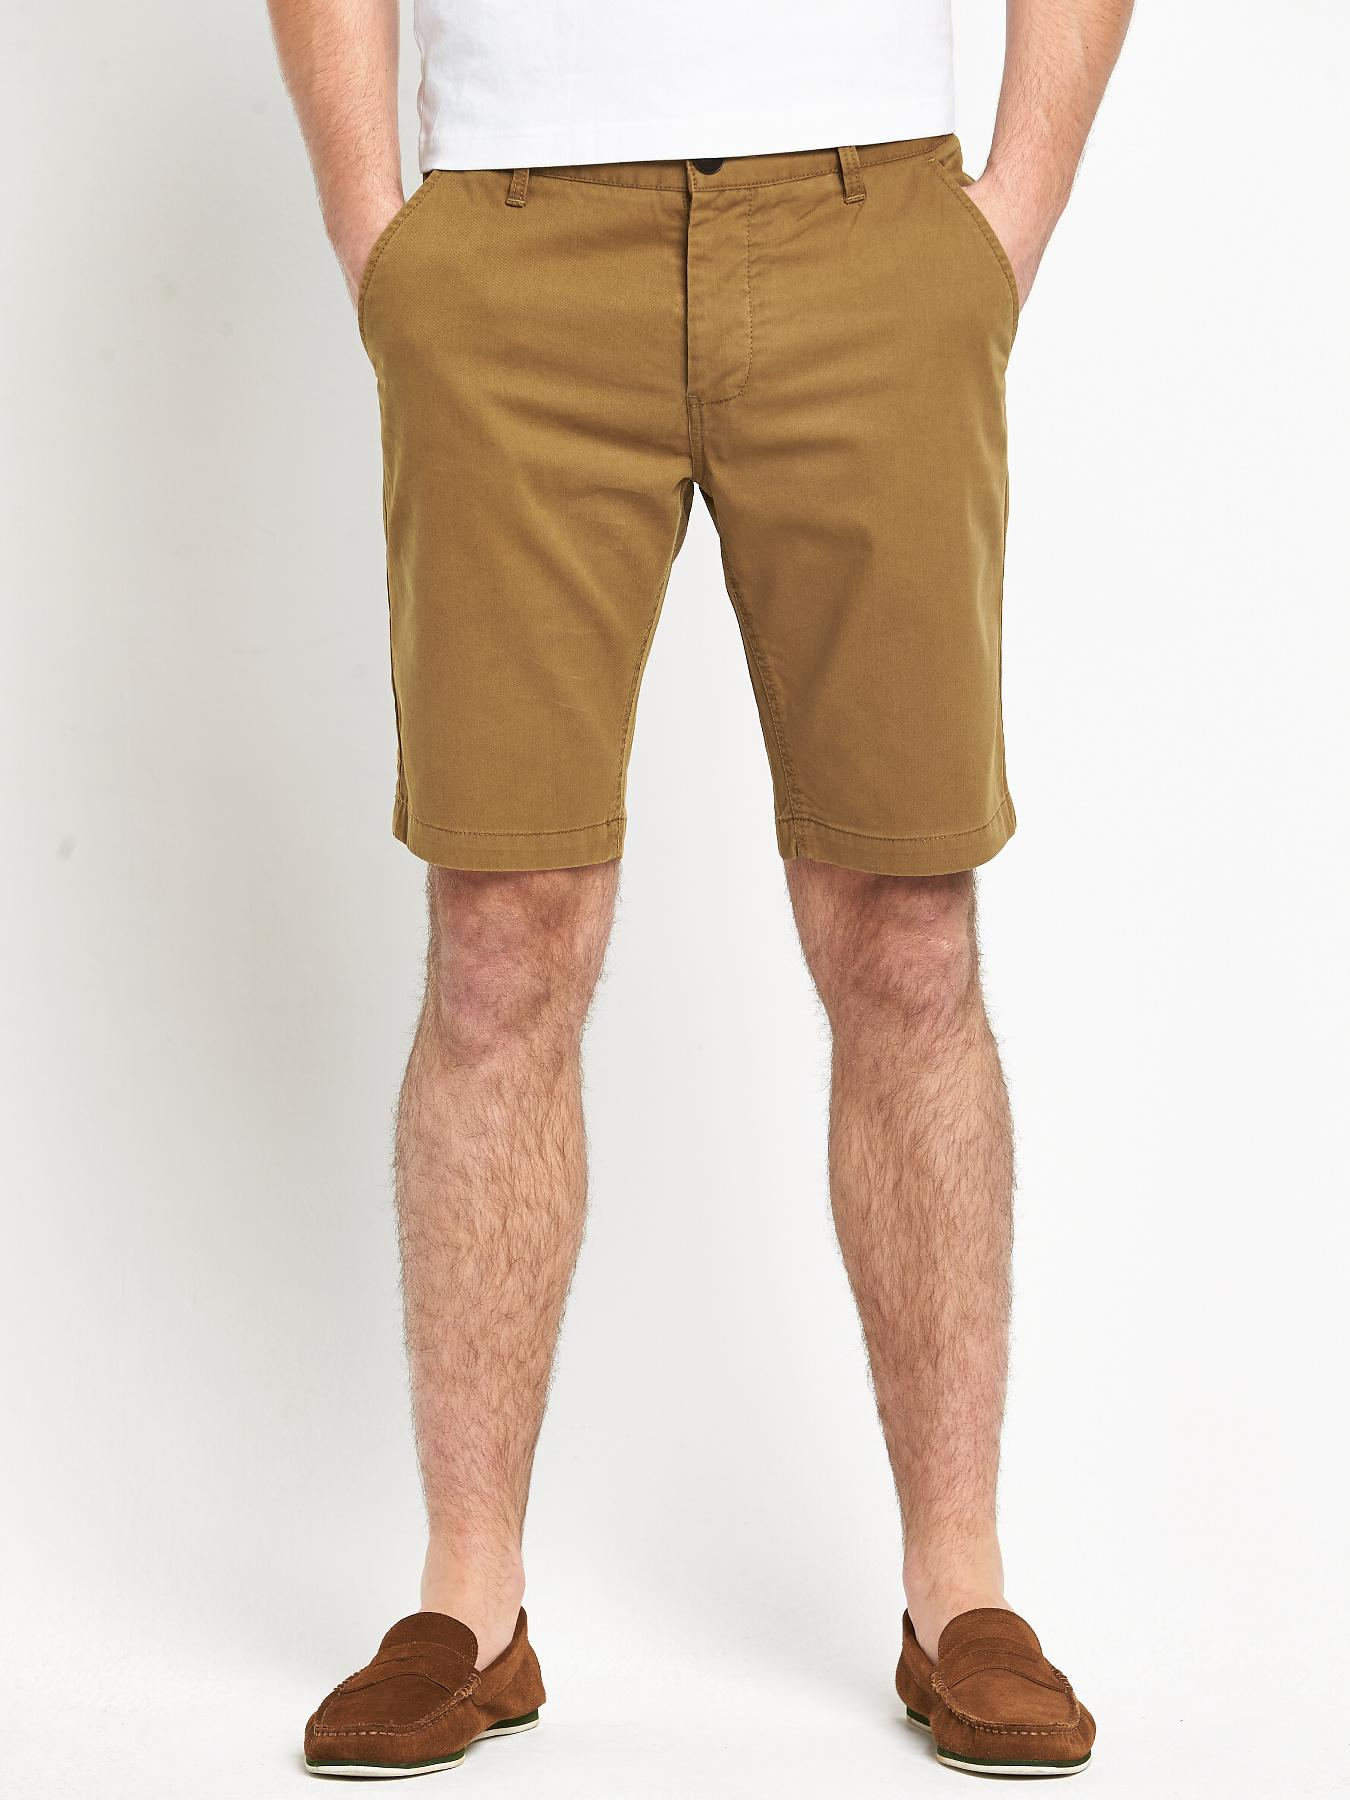 Mens Chino Shorts at Littlewoods